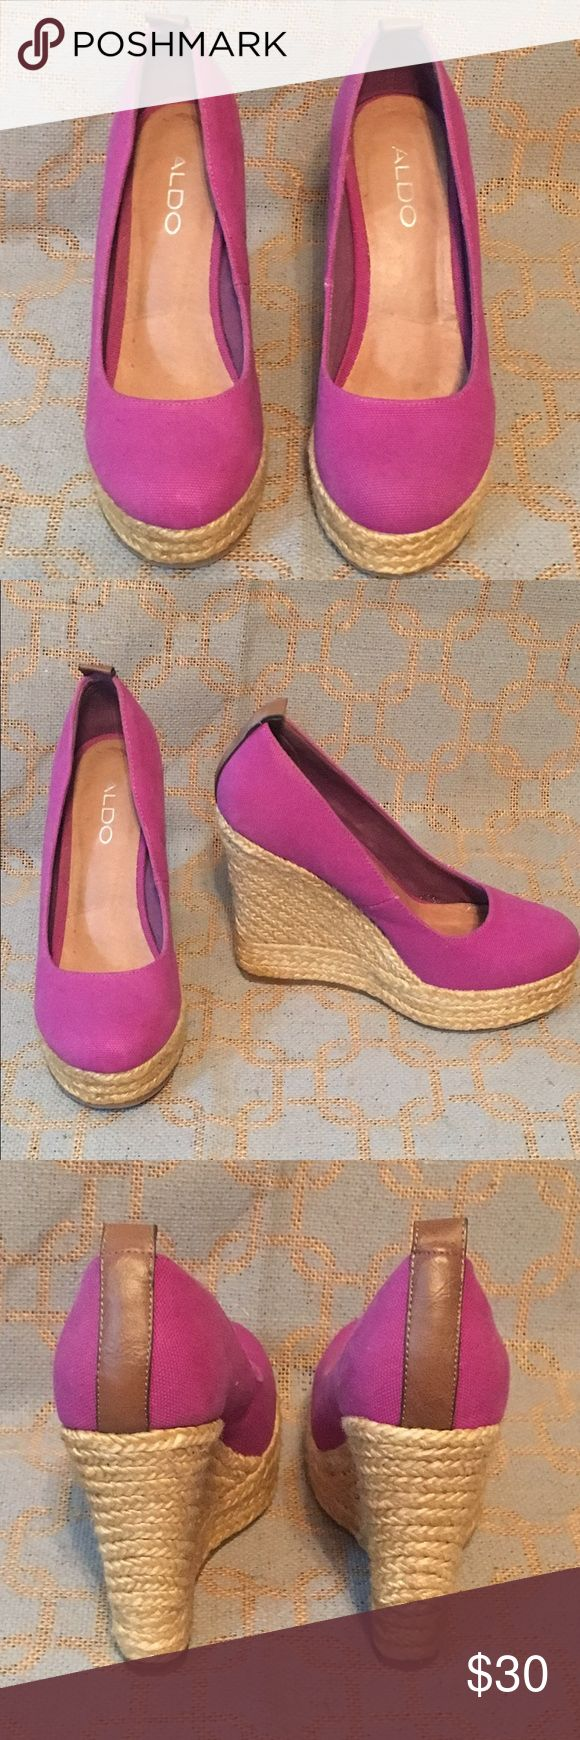 Aldo purple wedge shoes Aldo's brand purple wedge shoes size 7. Wore a few times. Look almost new. Aldo Shoes Wedges